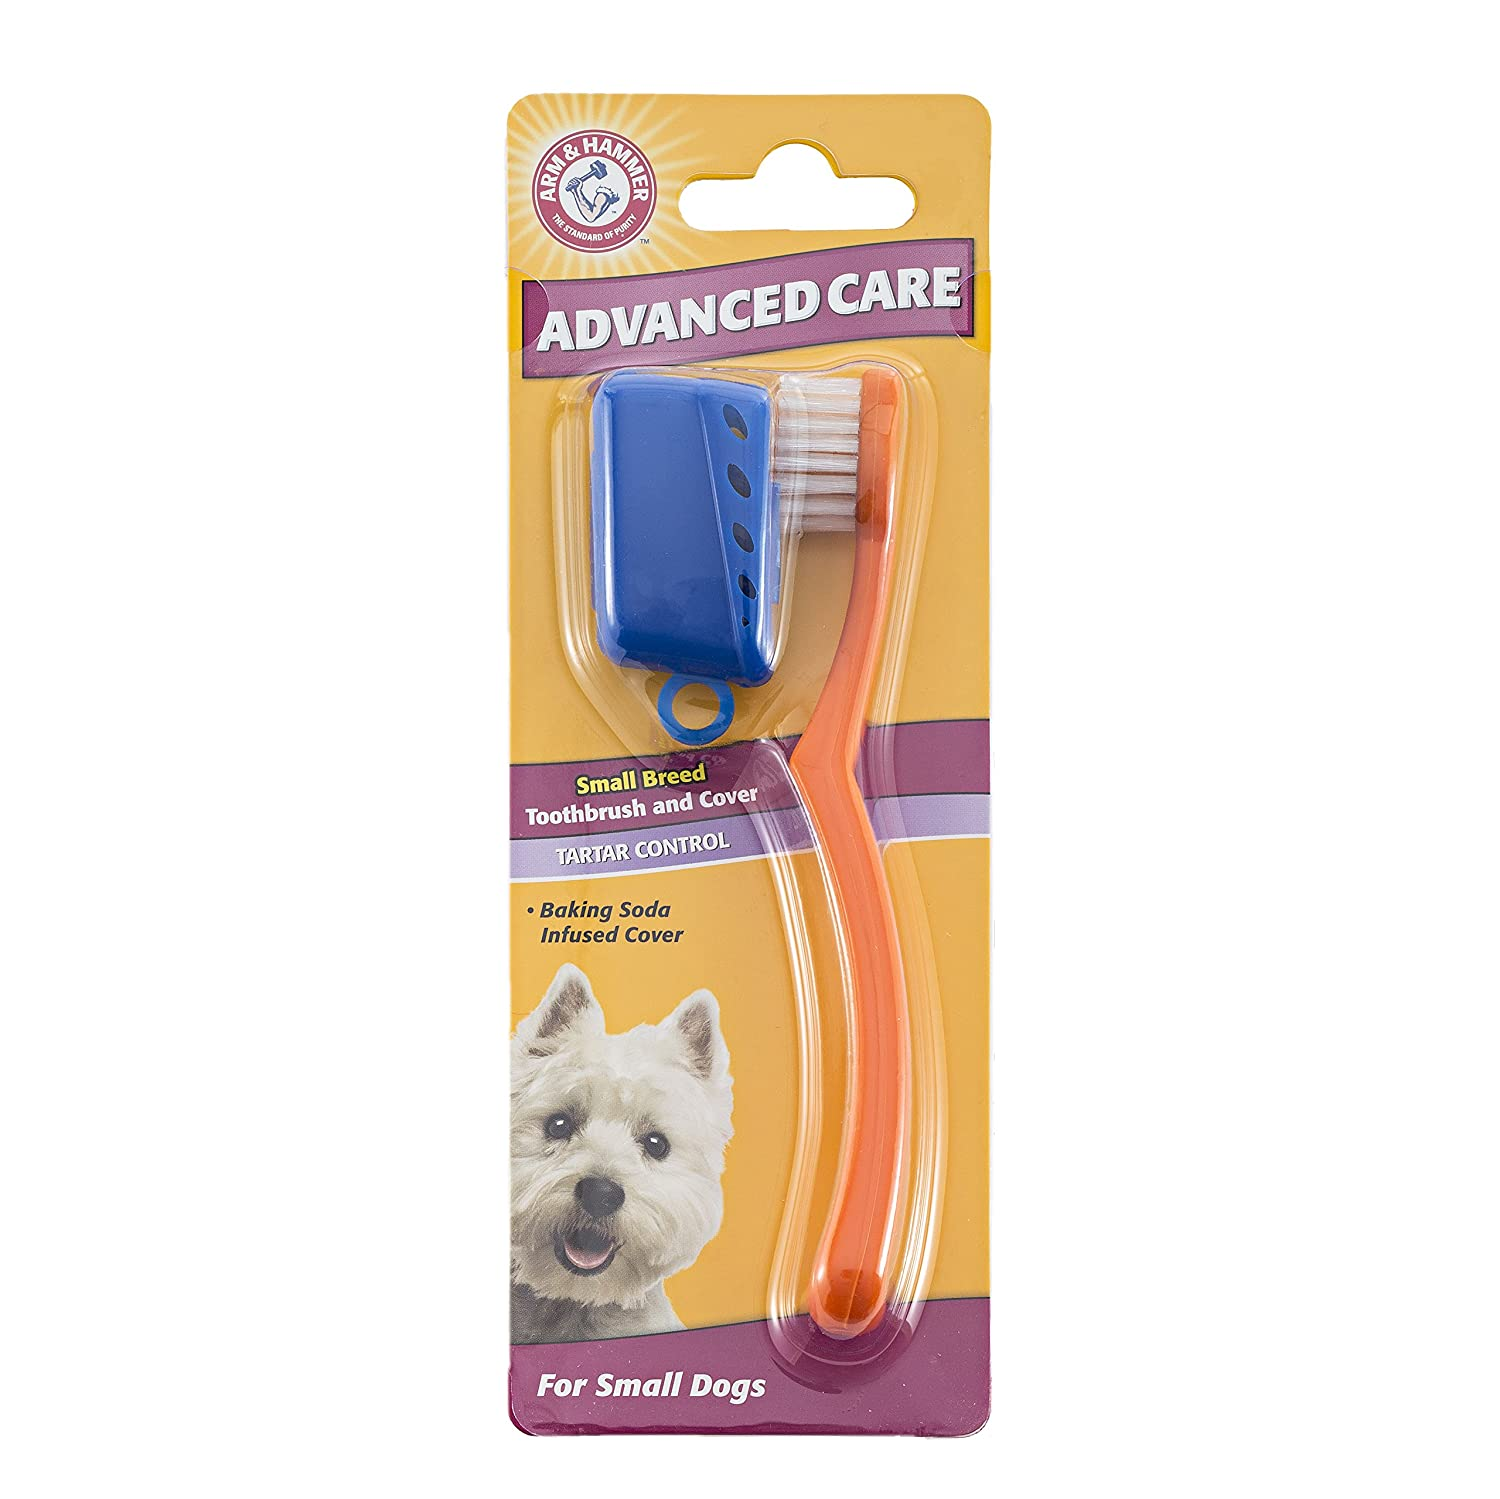 Arm & Hammer Advanced Care Tartar Control Small Breed Toothbrush and Cover For Dogs, Single Pack